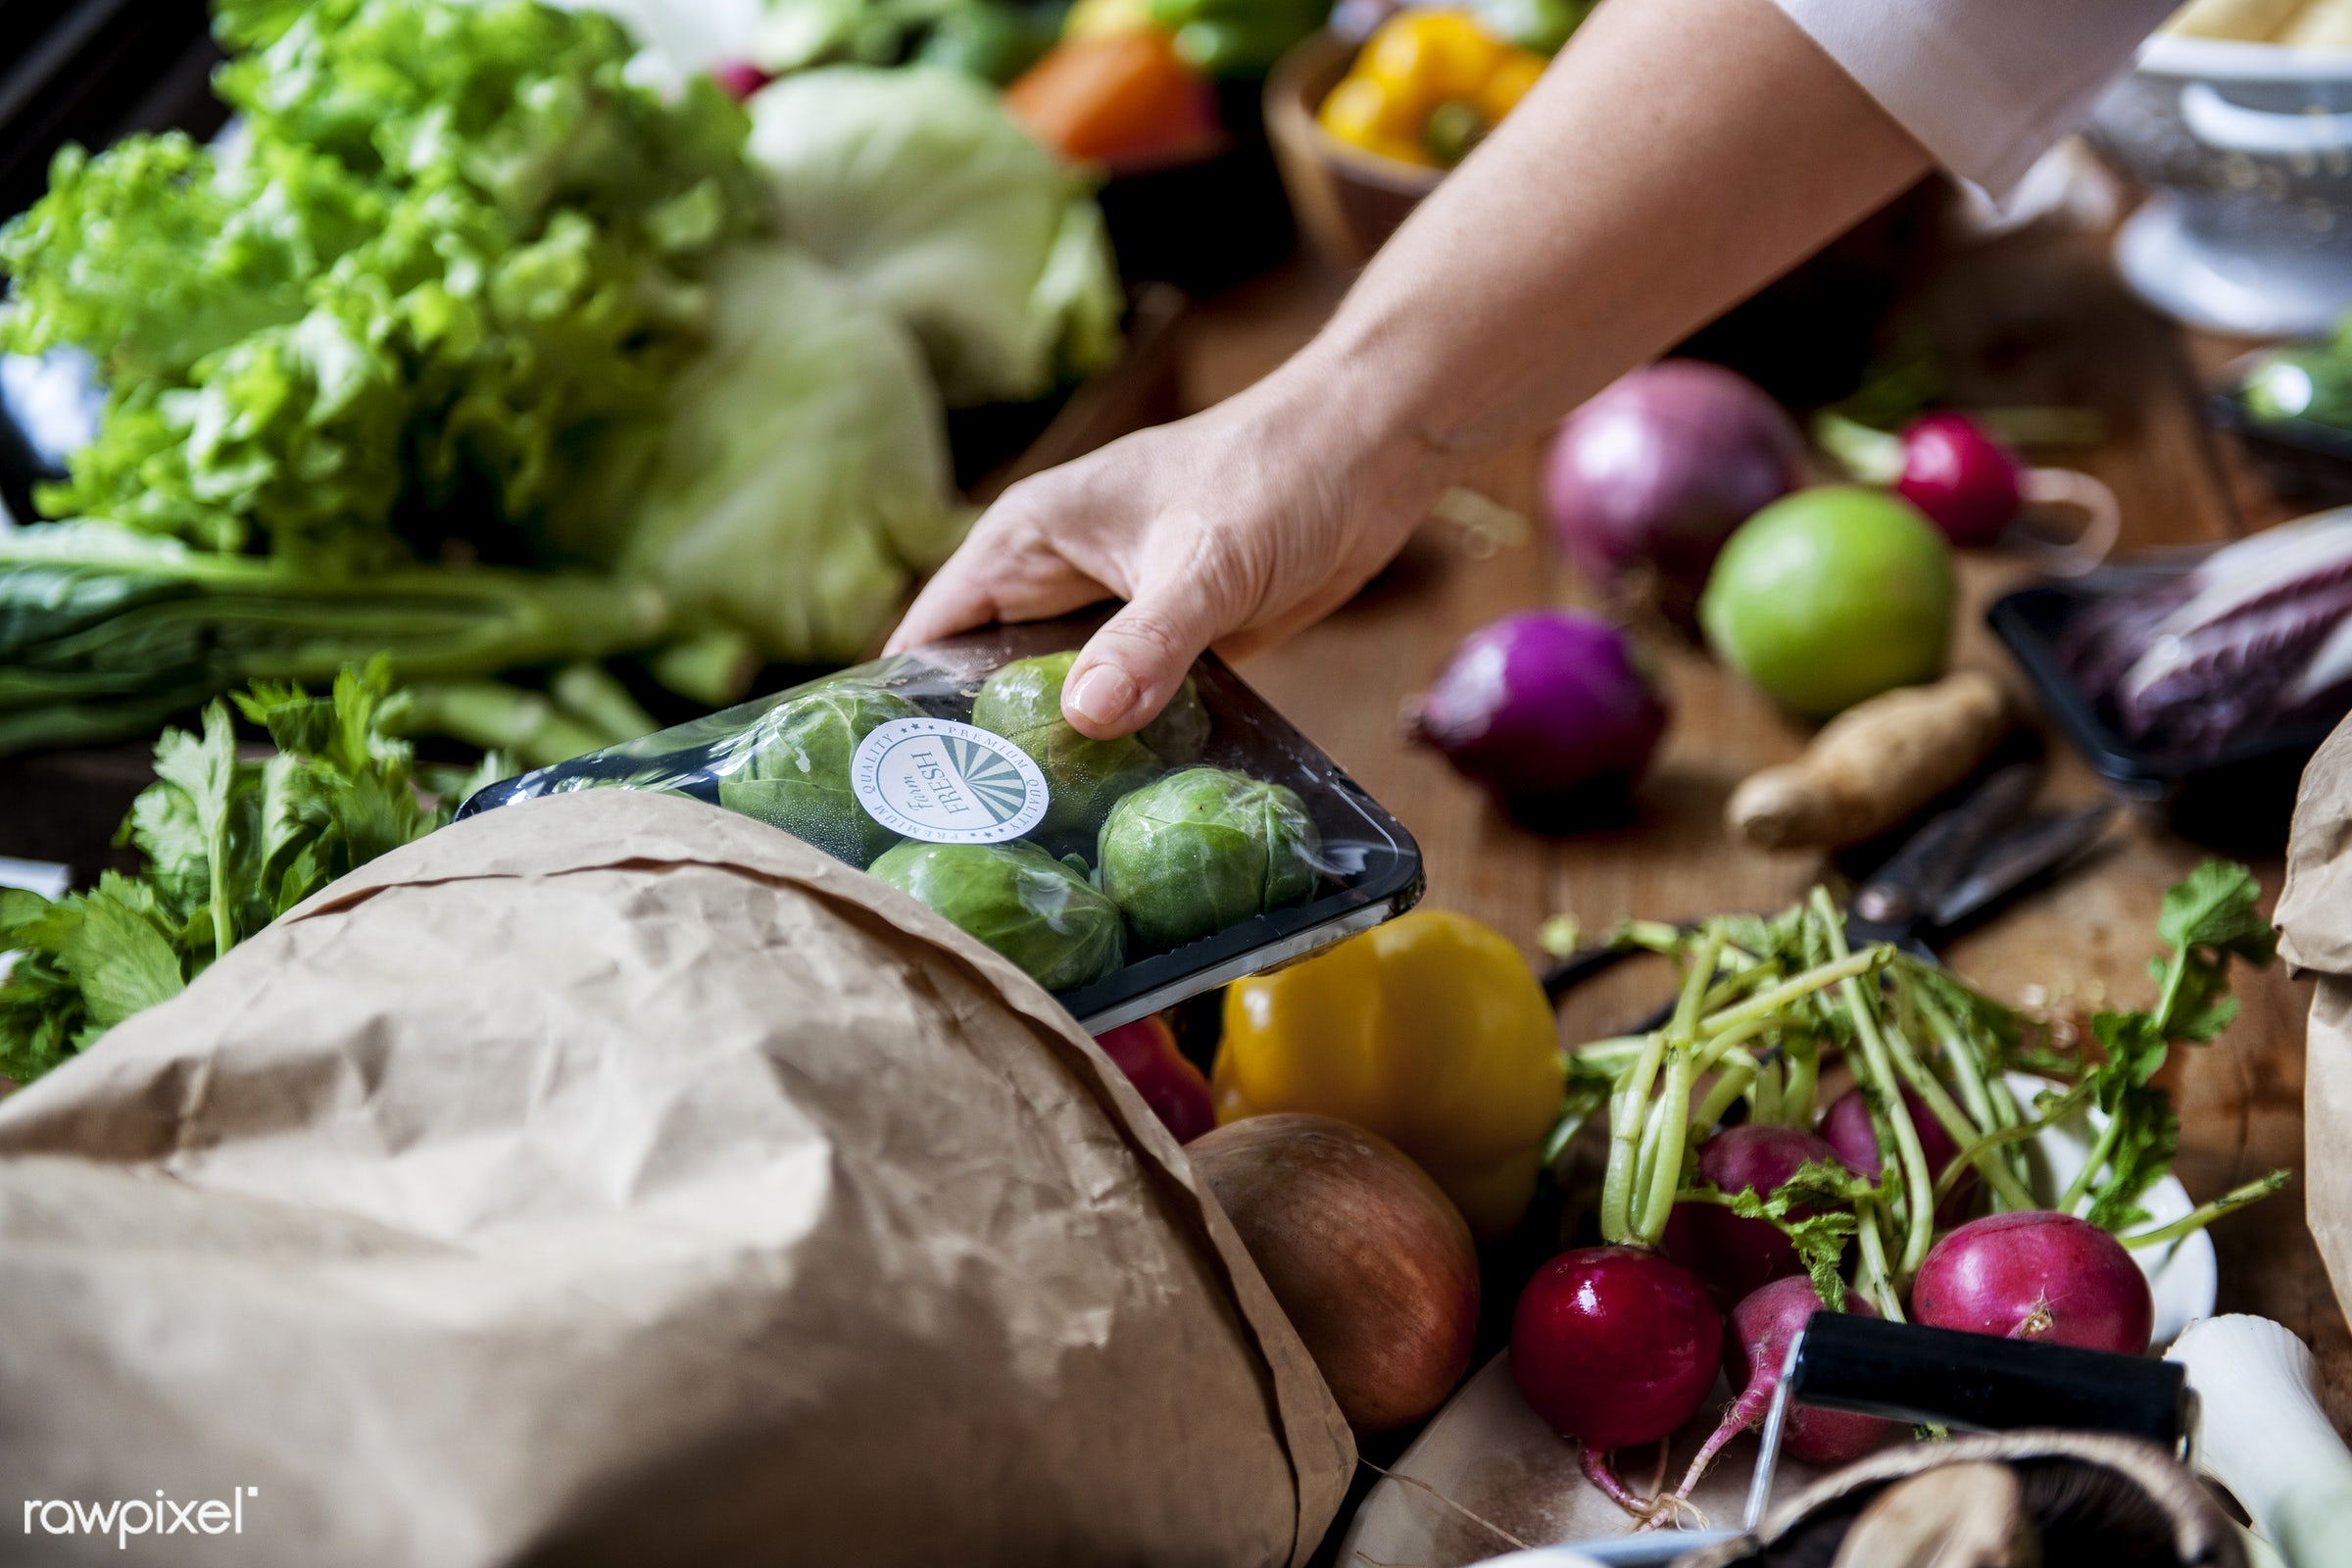 raw, diverse, buy, brussels sprouts, farm, ingredients, farmer, nature, hands, fresh, choosing, products, closeup,...